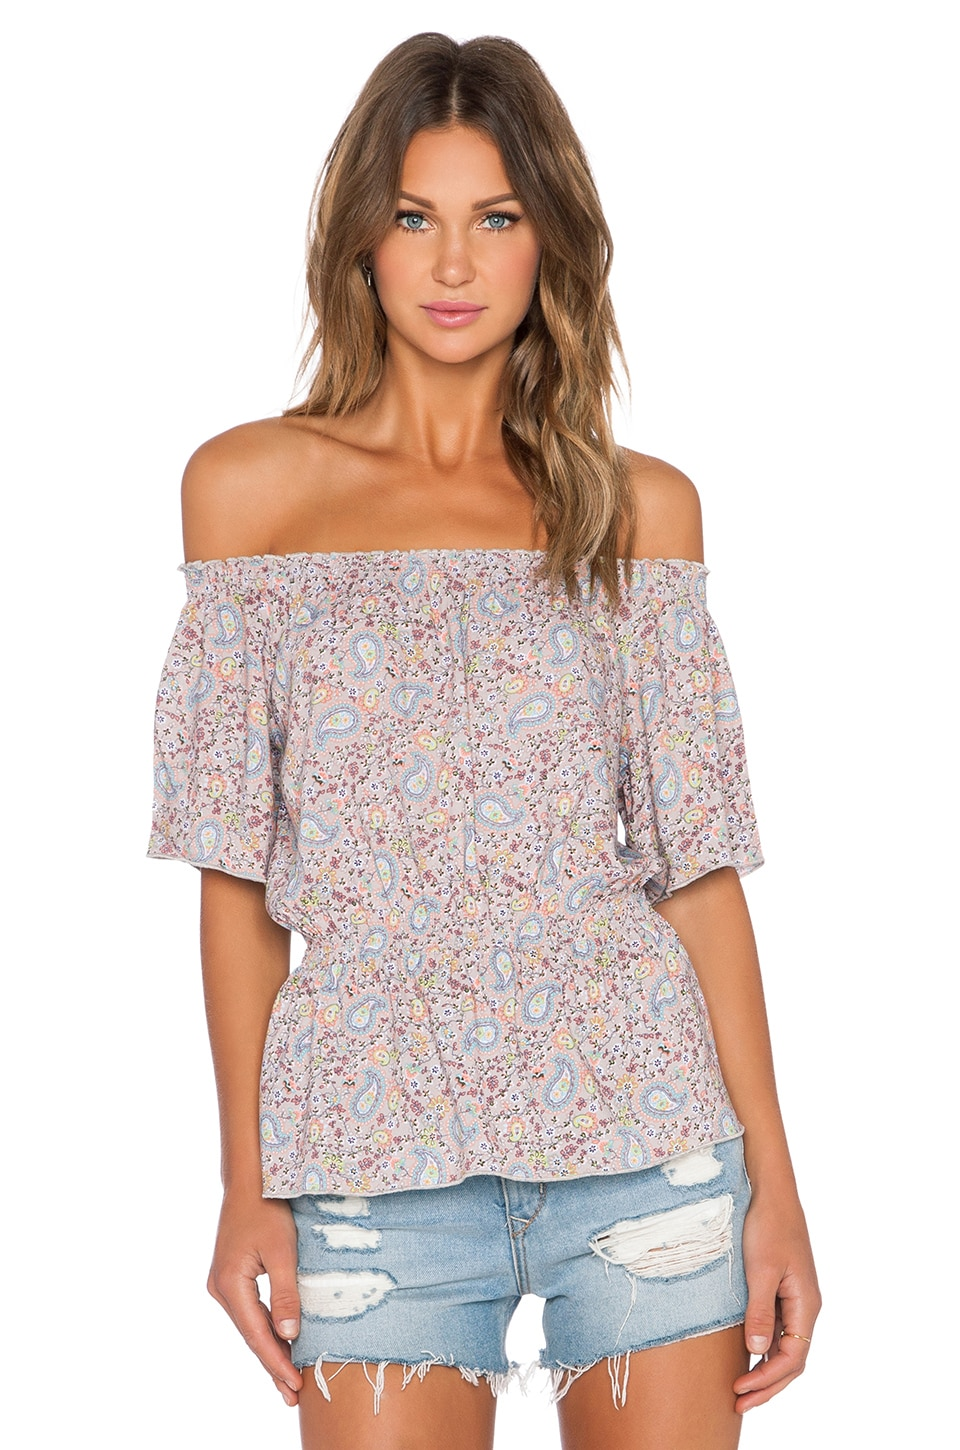 C&C California Off The Shoulder Peasant Top in SImply Taupe